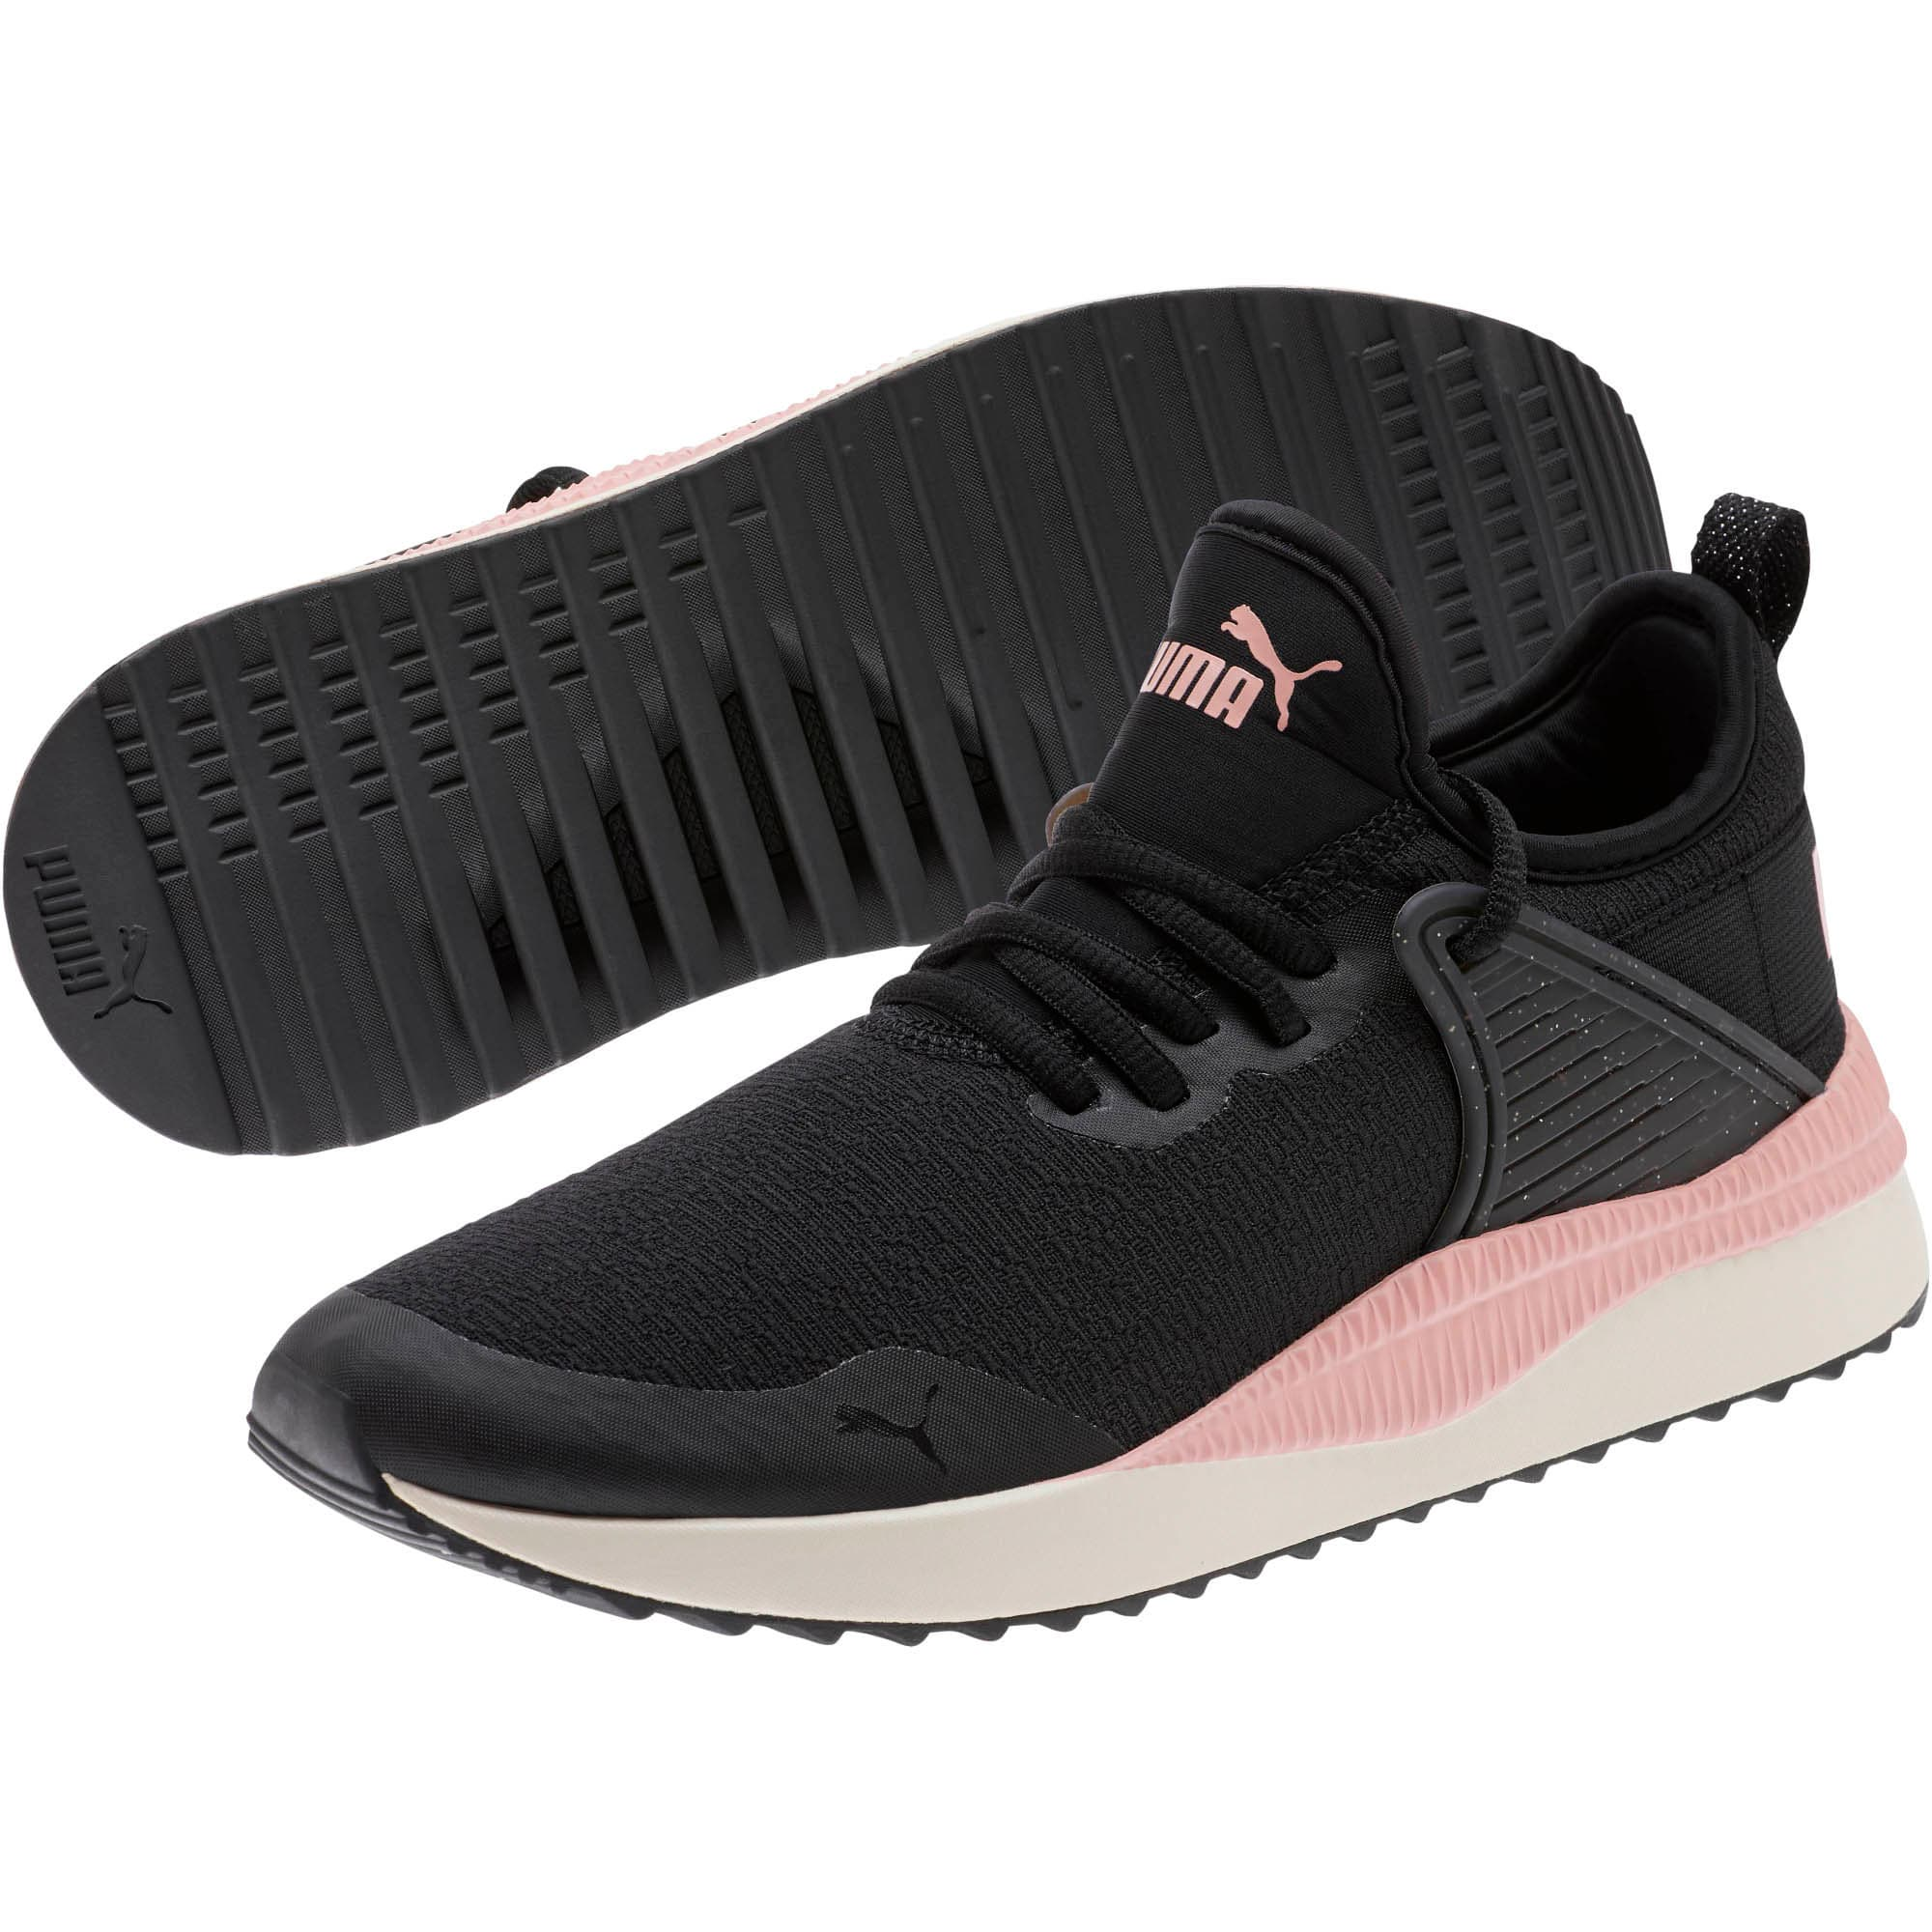 Thumbnail 2 of Pacer Next Cage Glitter Women's Sneakers, Puma Black-Bridal Rose, medium